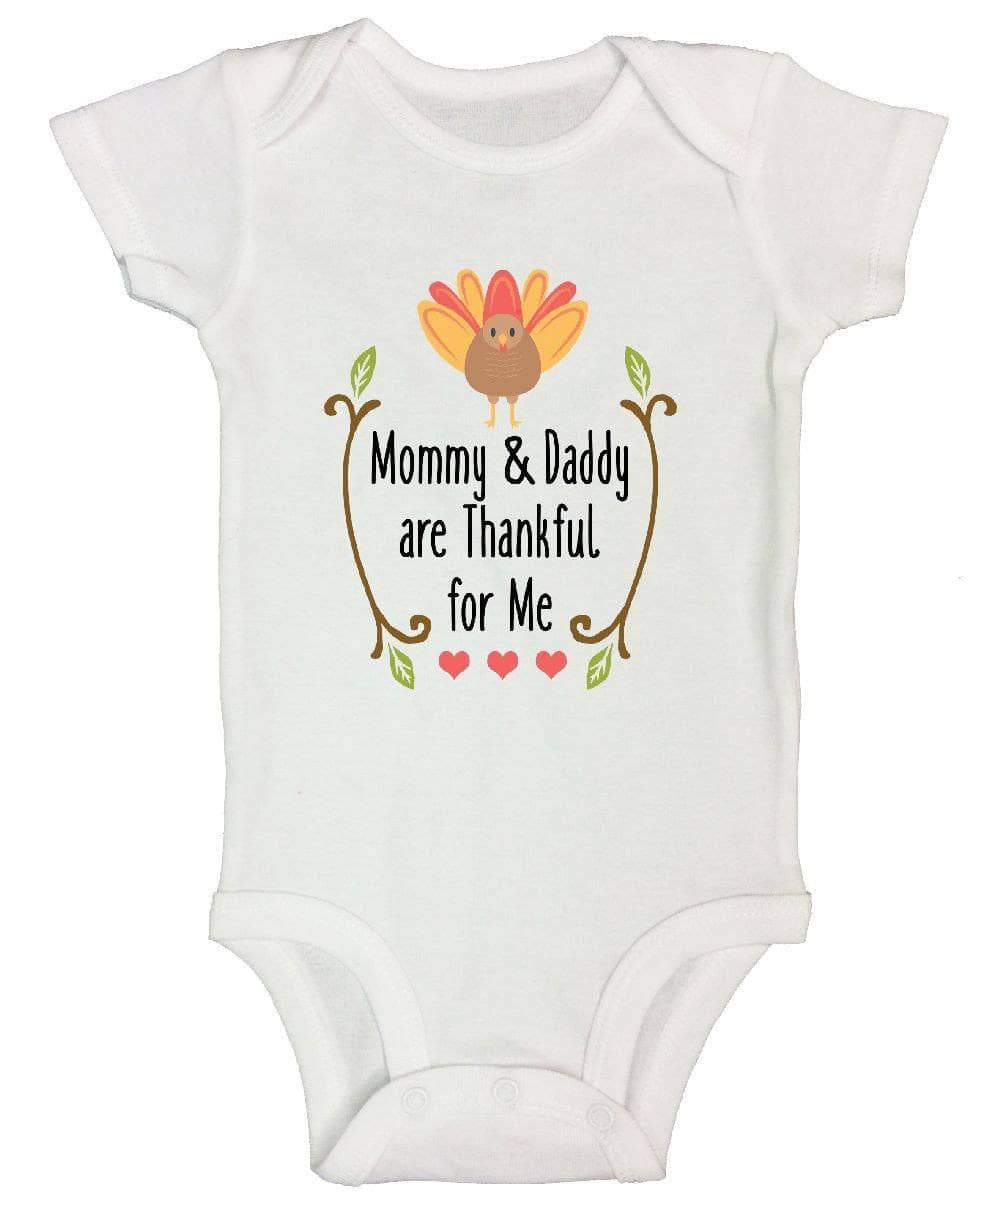 Mommy & Daddy Are Thankful For Me FUNNY KIDS ONESIE Short Sleeve 0-3 Months Womens Tank Tops